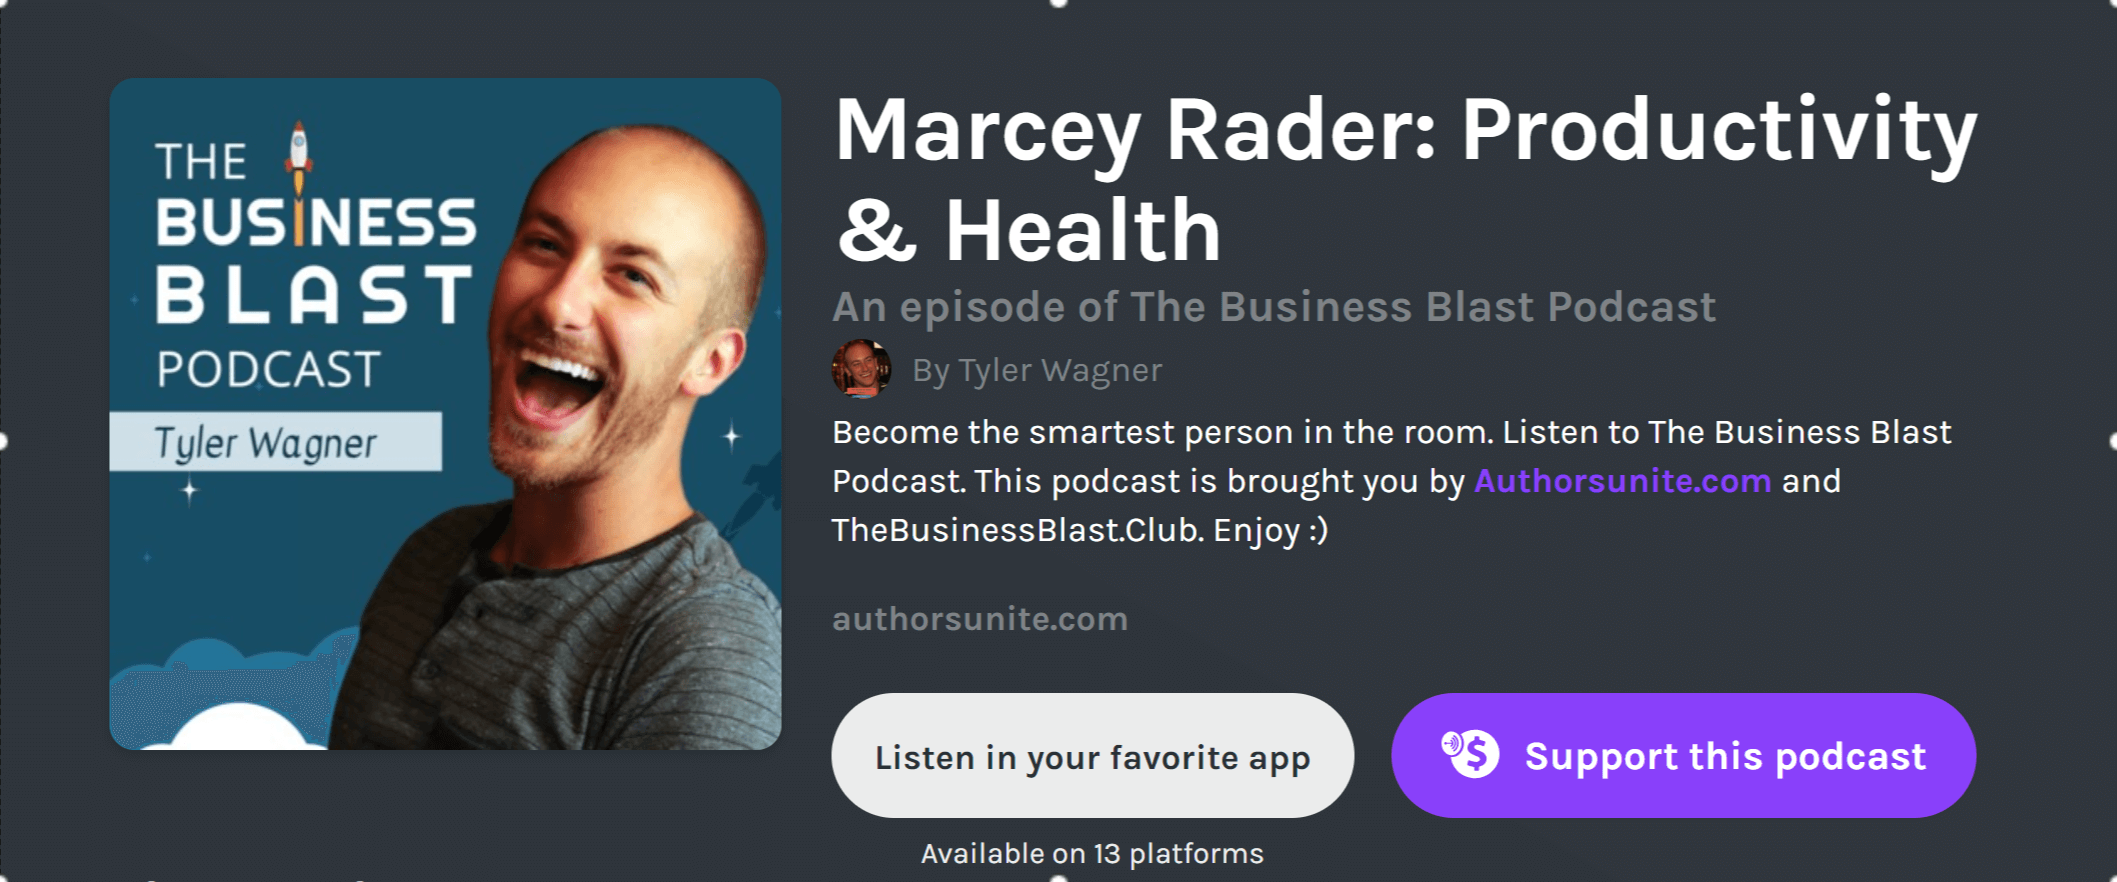 Marcey Rader: Productivity & Health